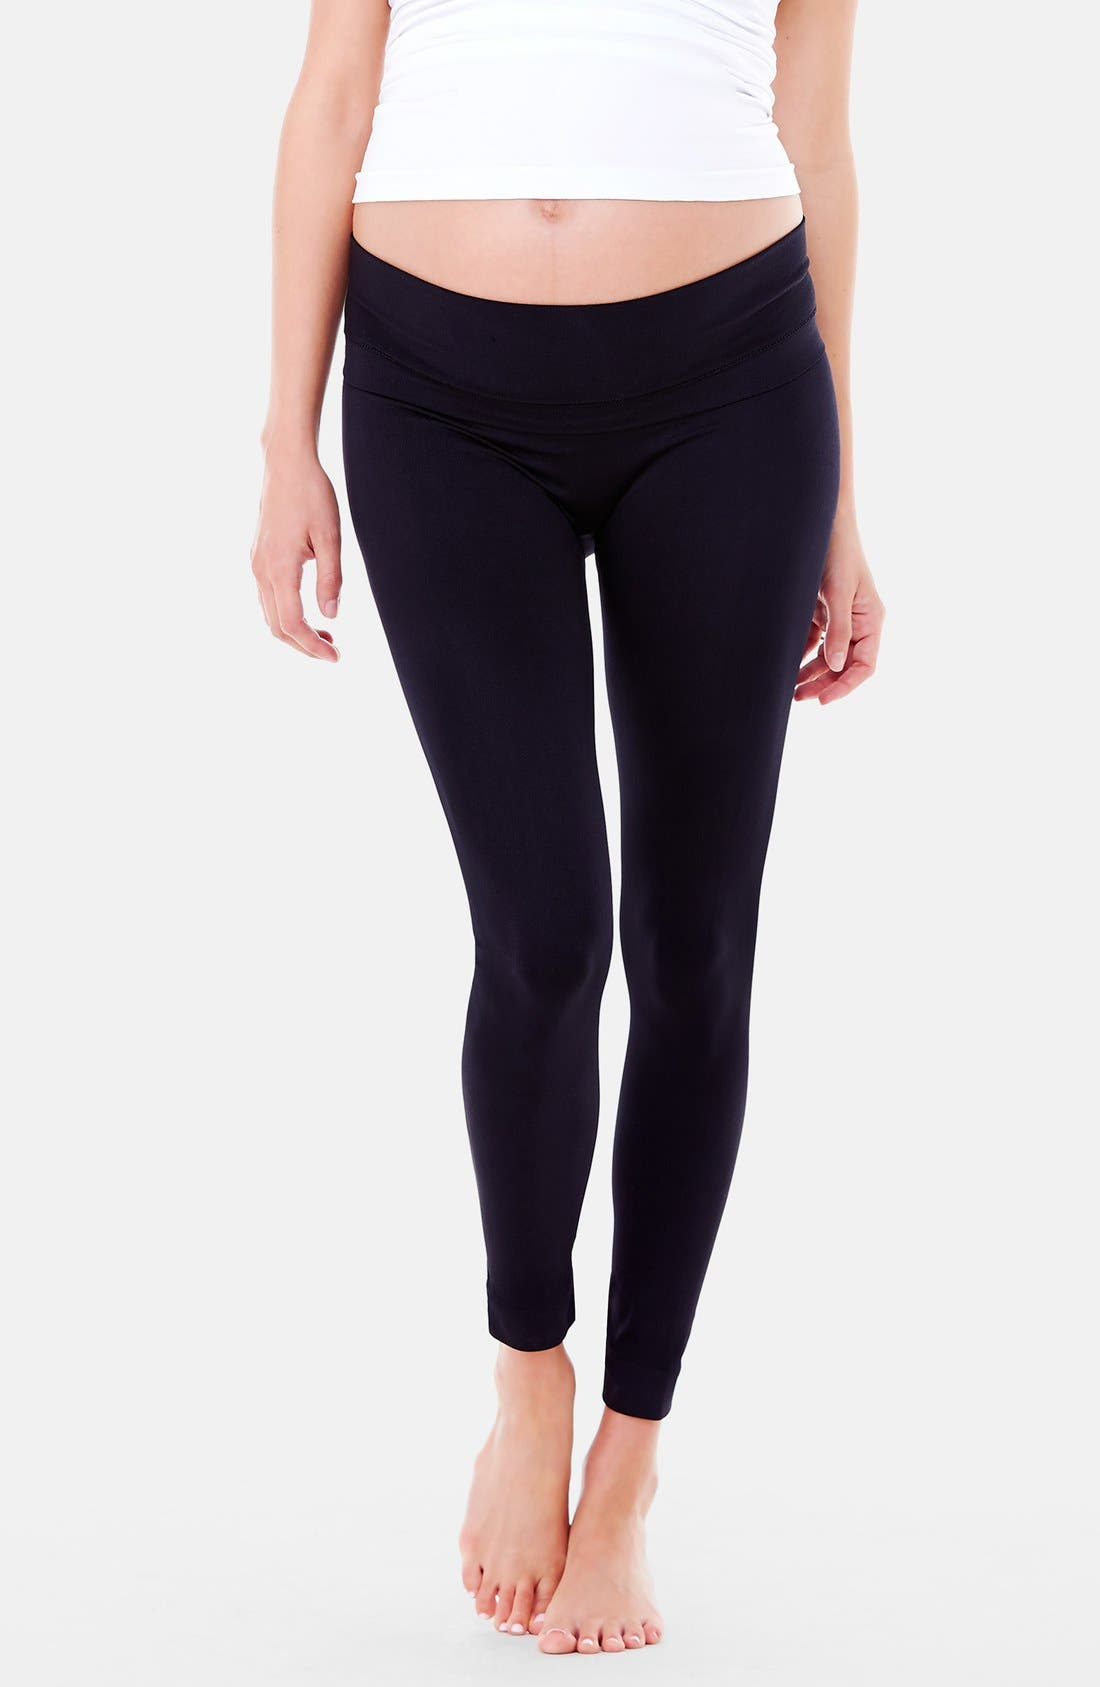 INGRID & ISABEL<SUP>®</SUP> 'Everyday' Seamless Maternity Leggings, Main, color, 001